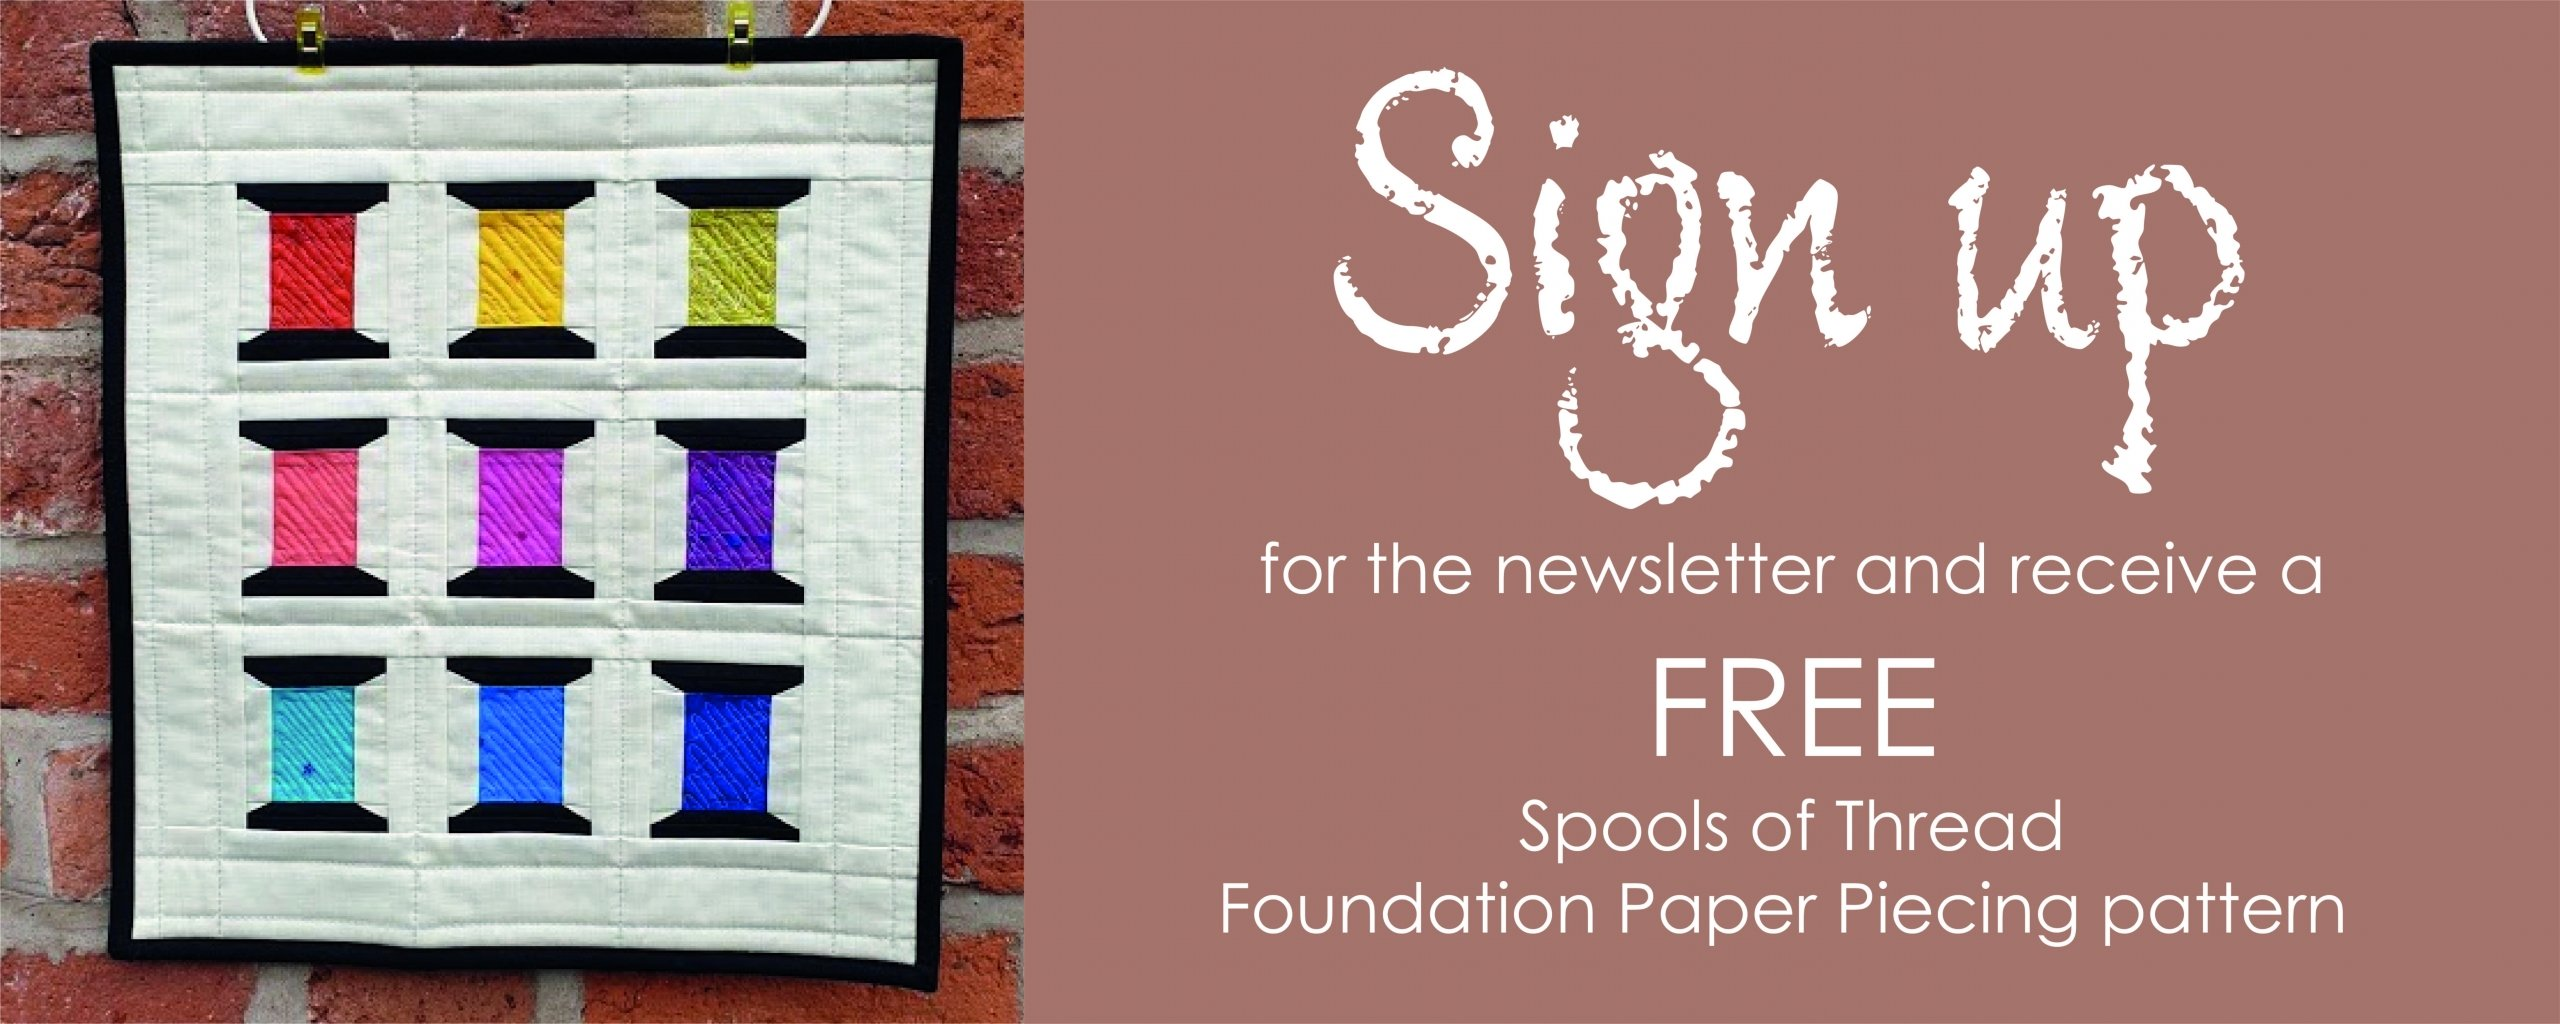 Sign up for the newsletter for a FREE FPP pdf pattern